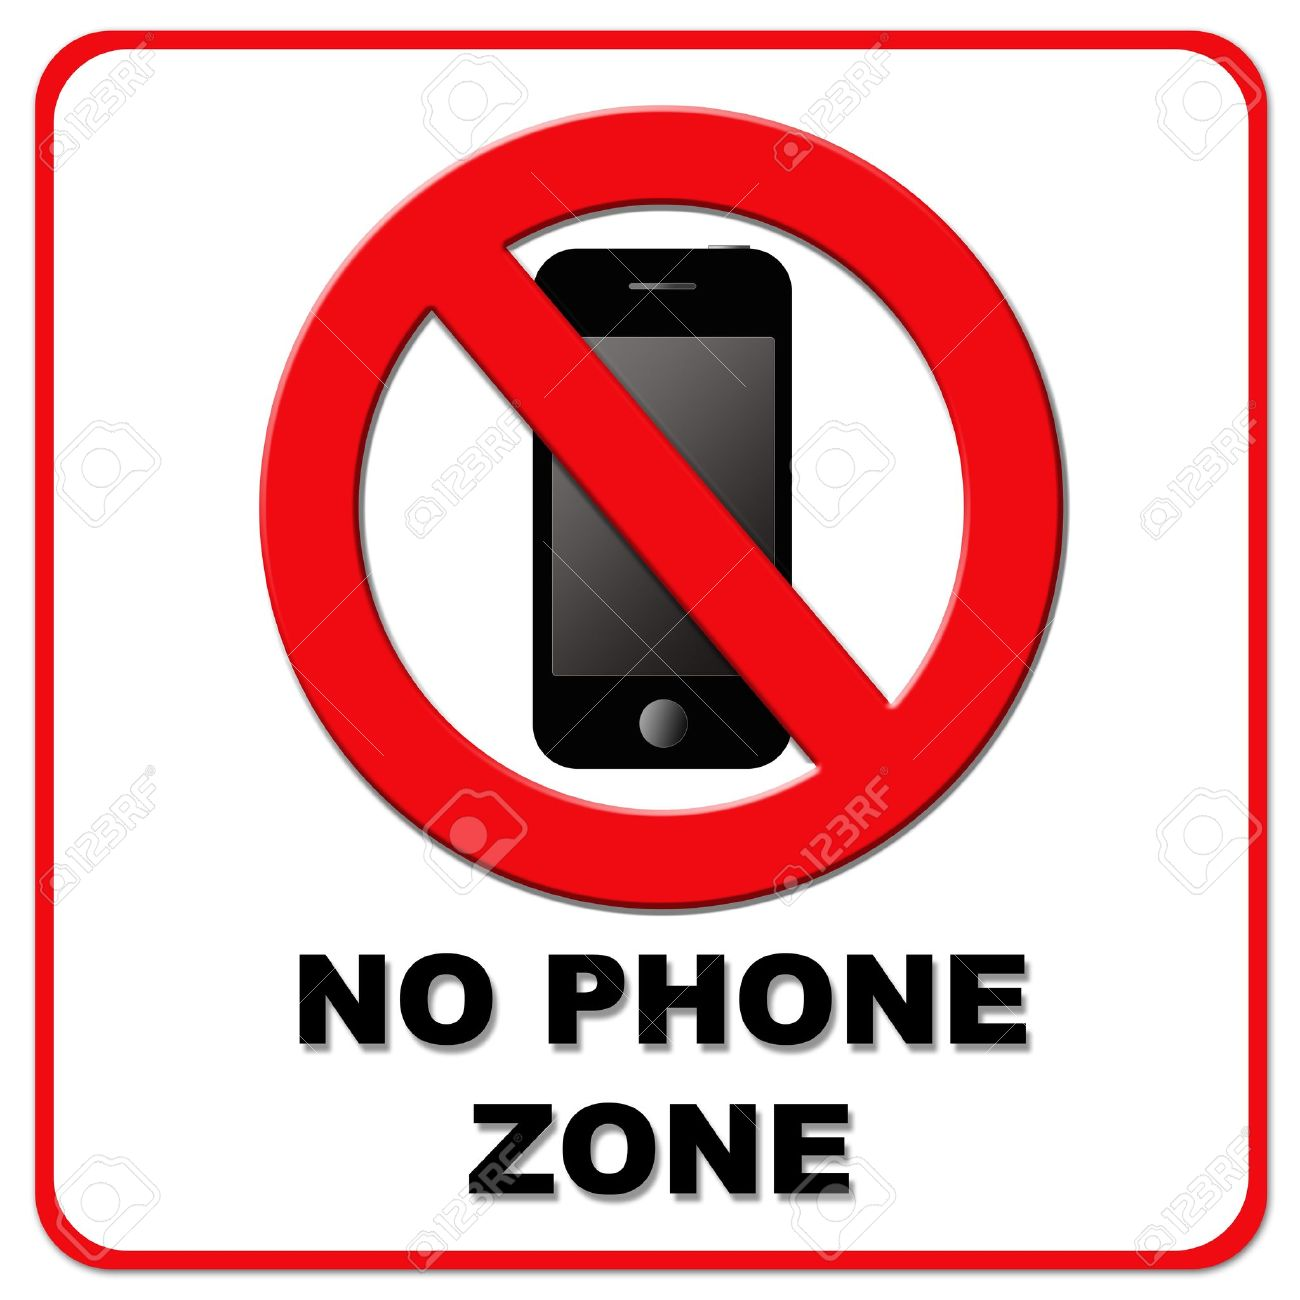 12535036-Black-and-red-No-Phone-Zone-sign-on-white-background-Stock-Photo.jpg